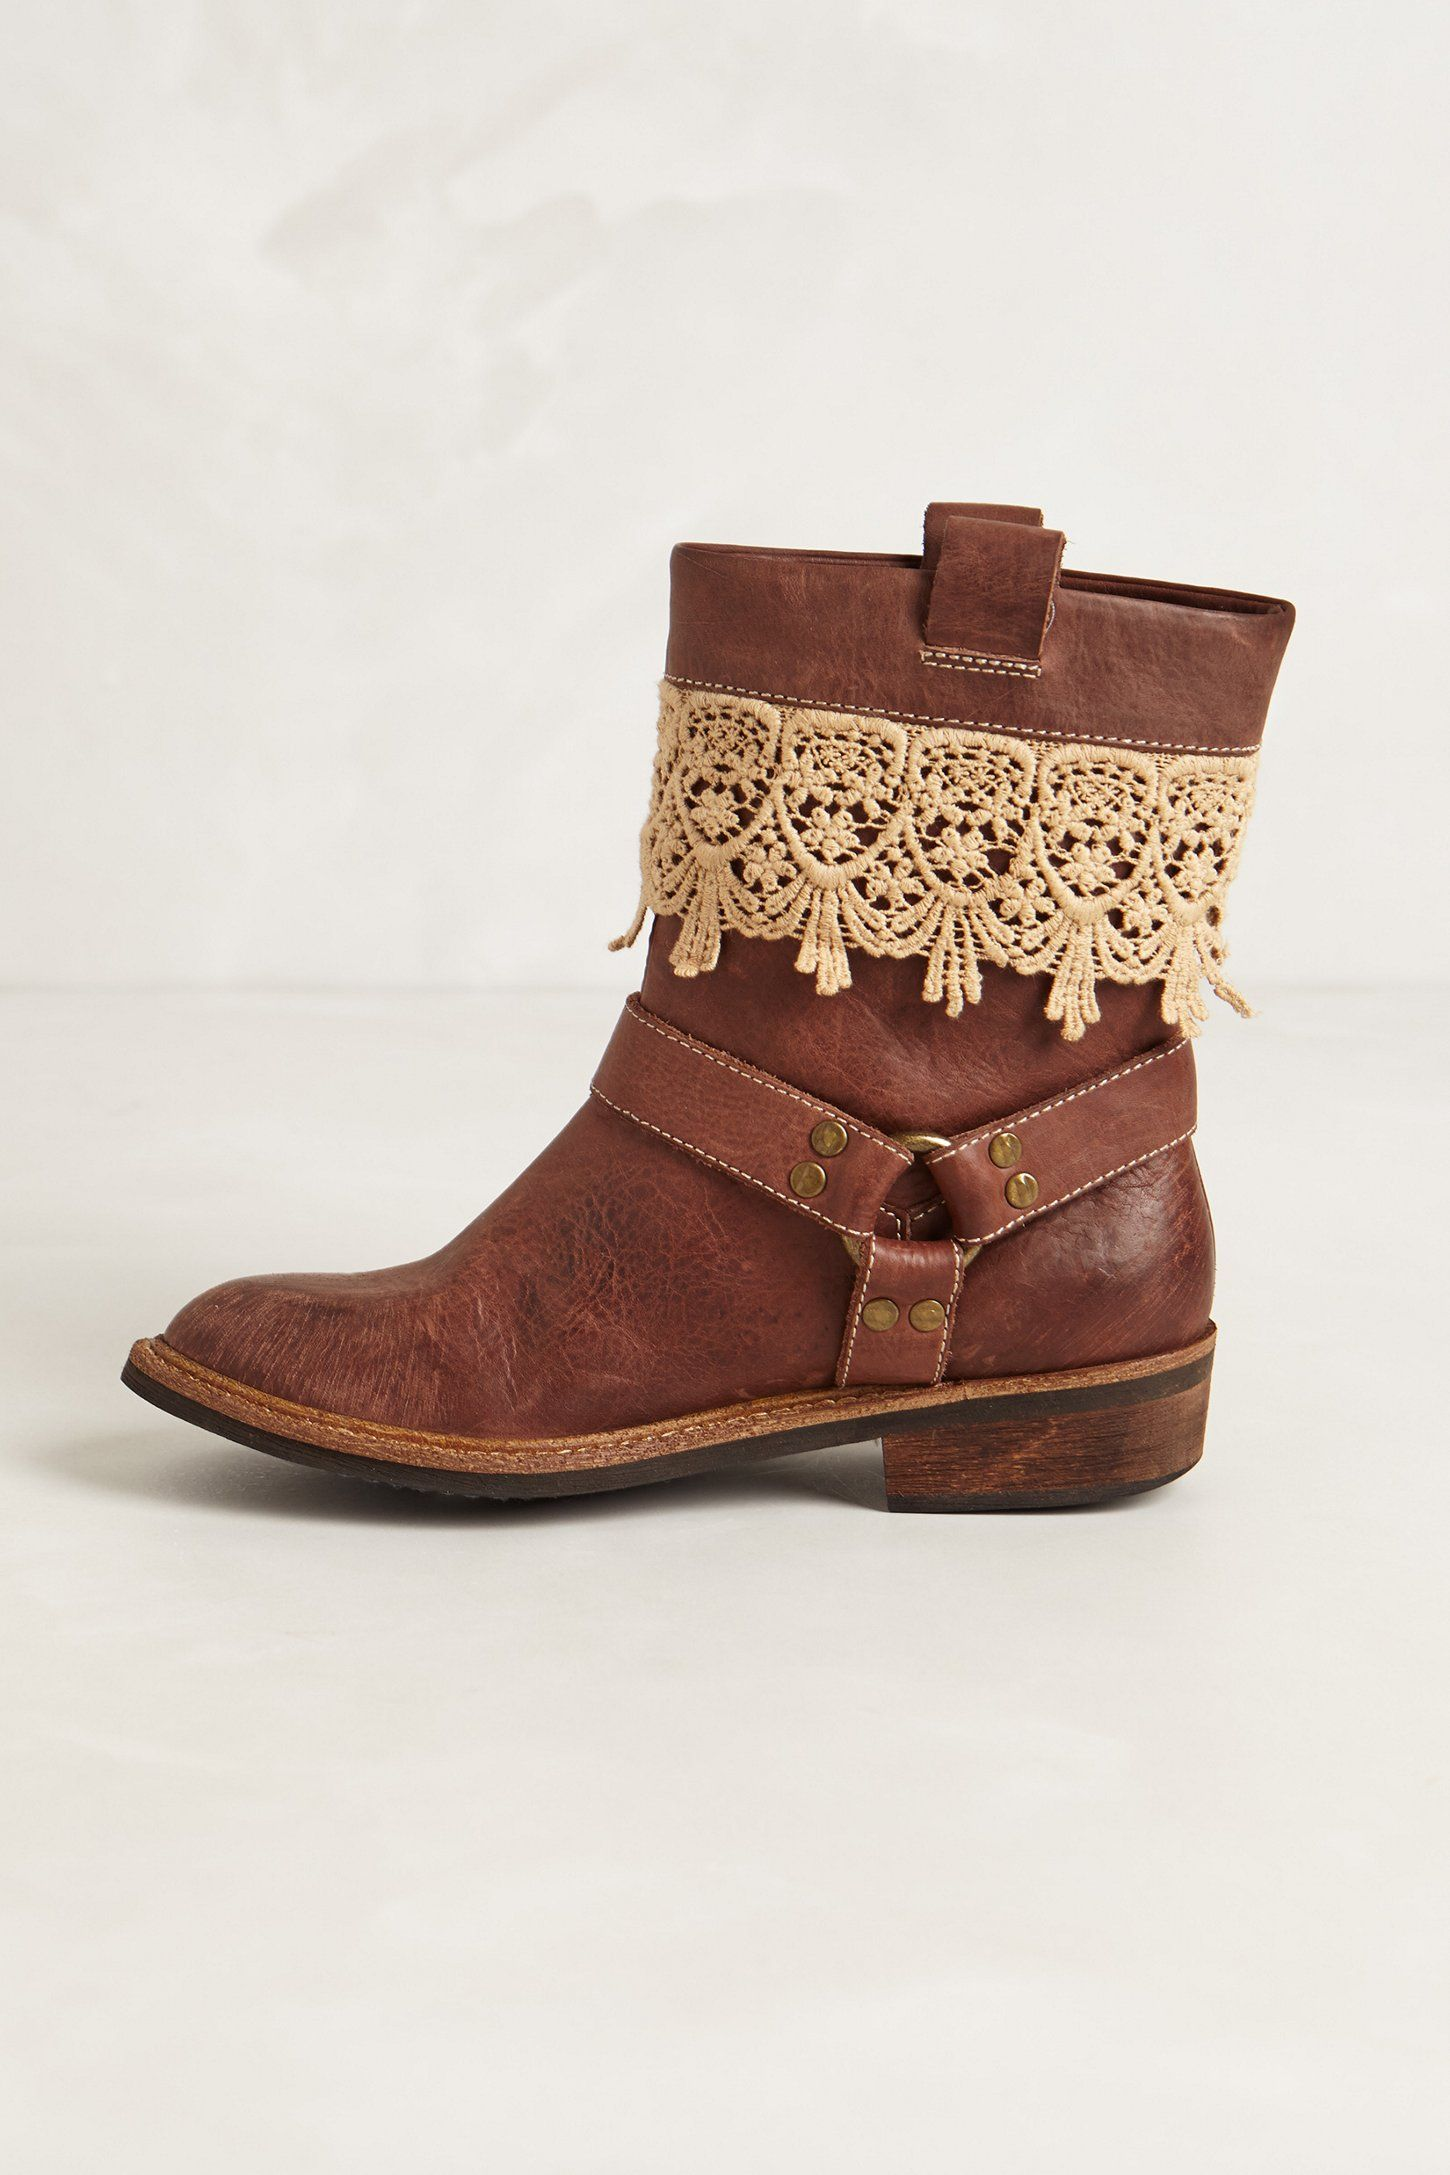 Lace Trim Boots these look like @Mallory Puentes Puentes Landry